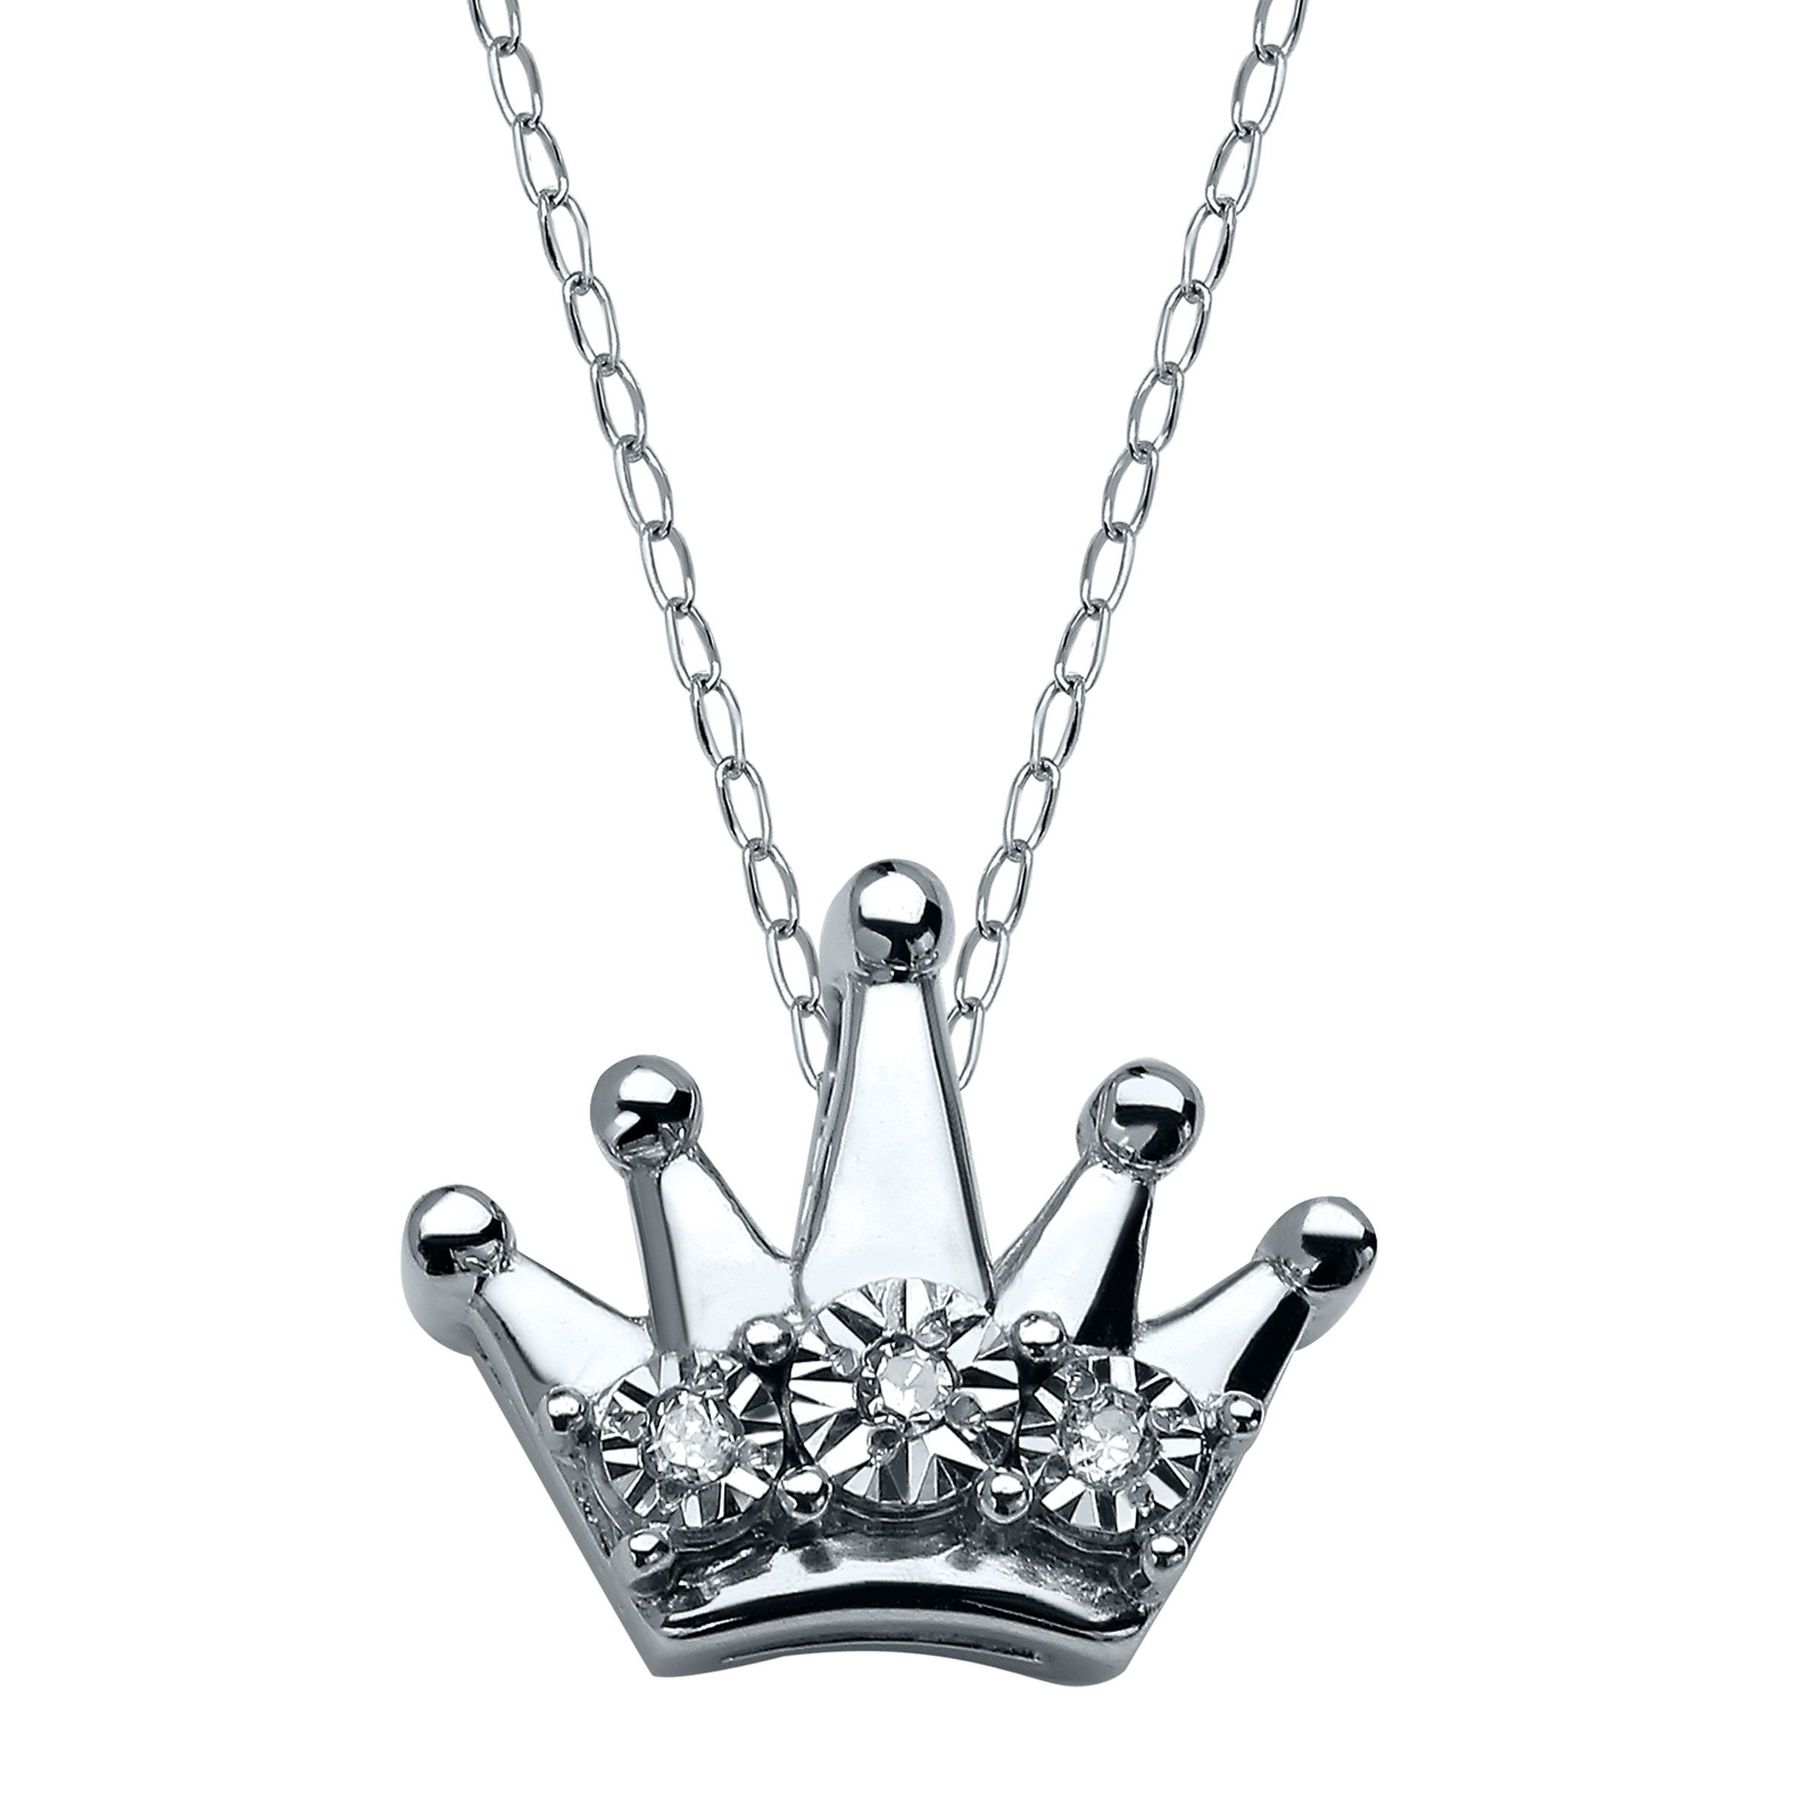 retail free dsc necklaces crown necklace shop pendant crystal pendants jewelry square zircon shipping fashion